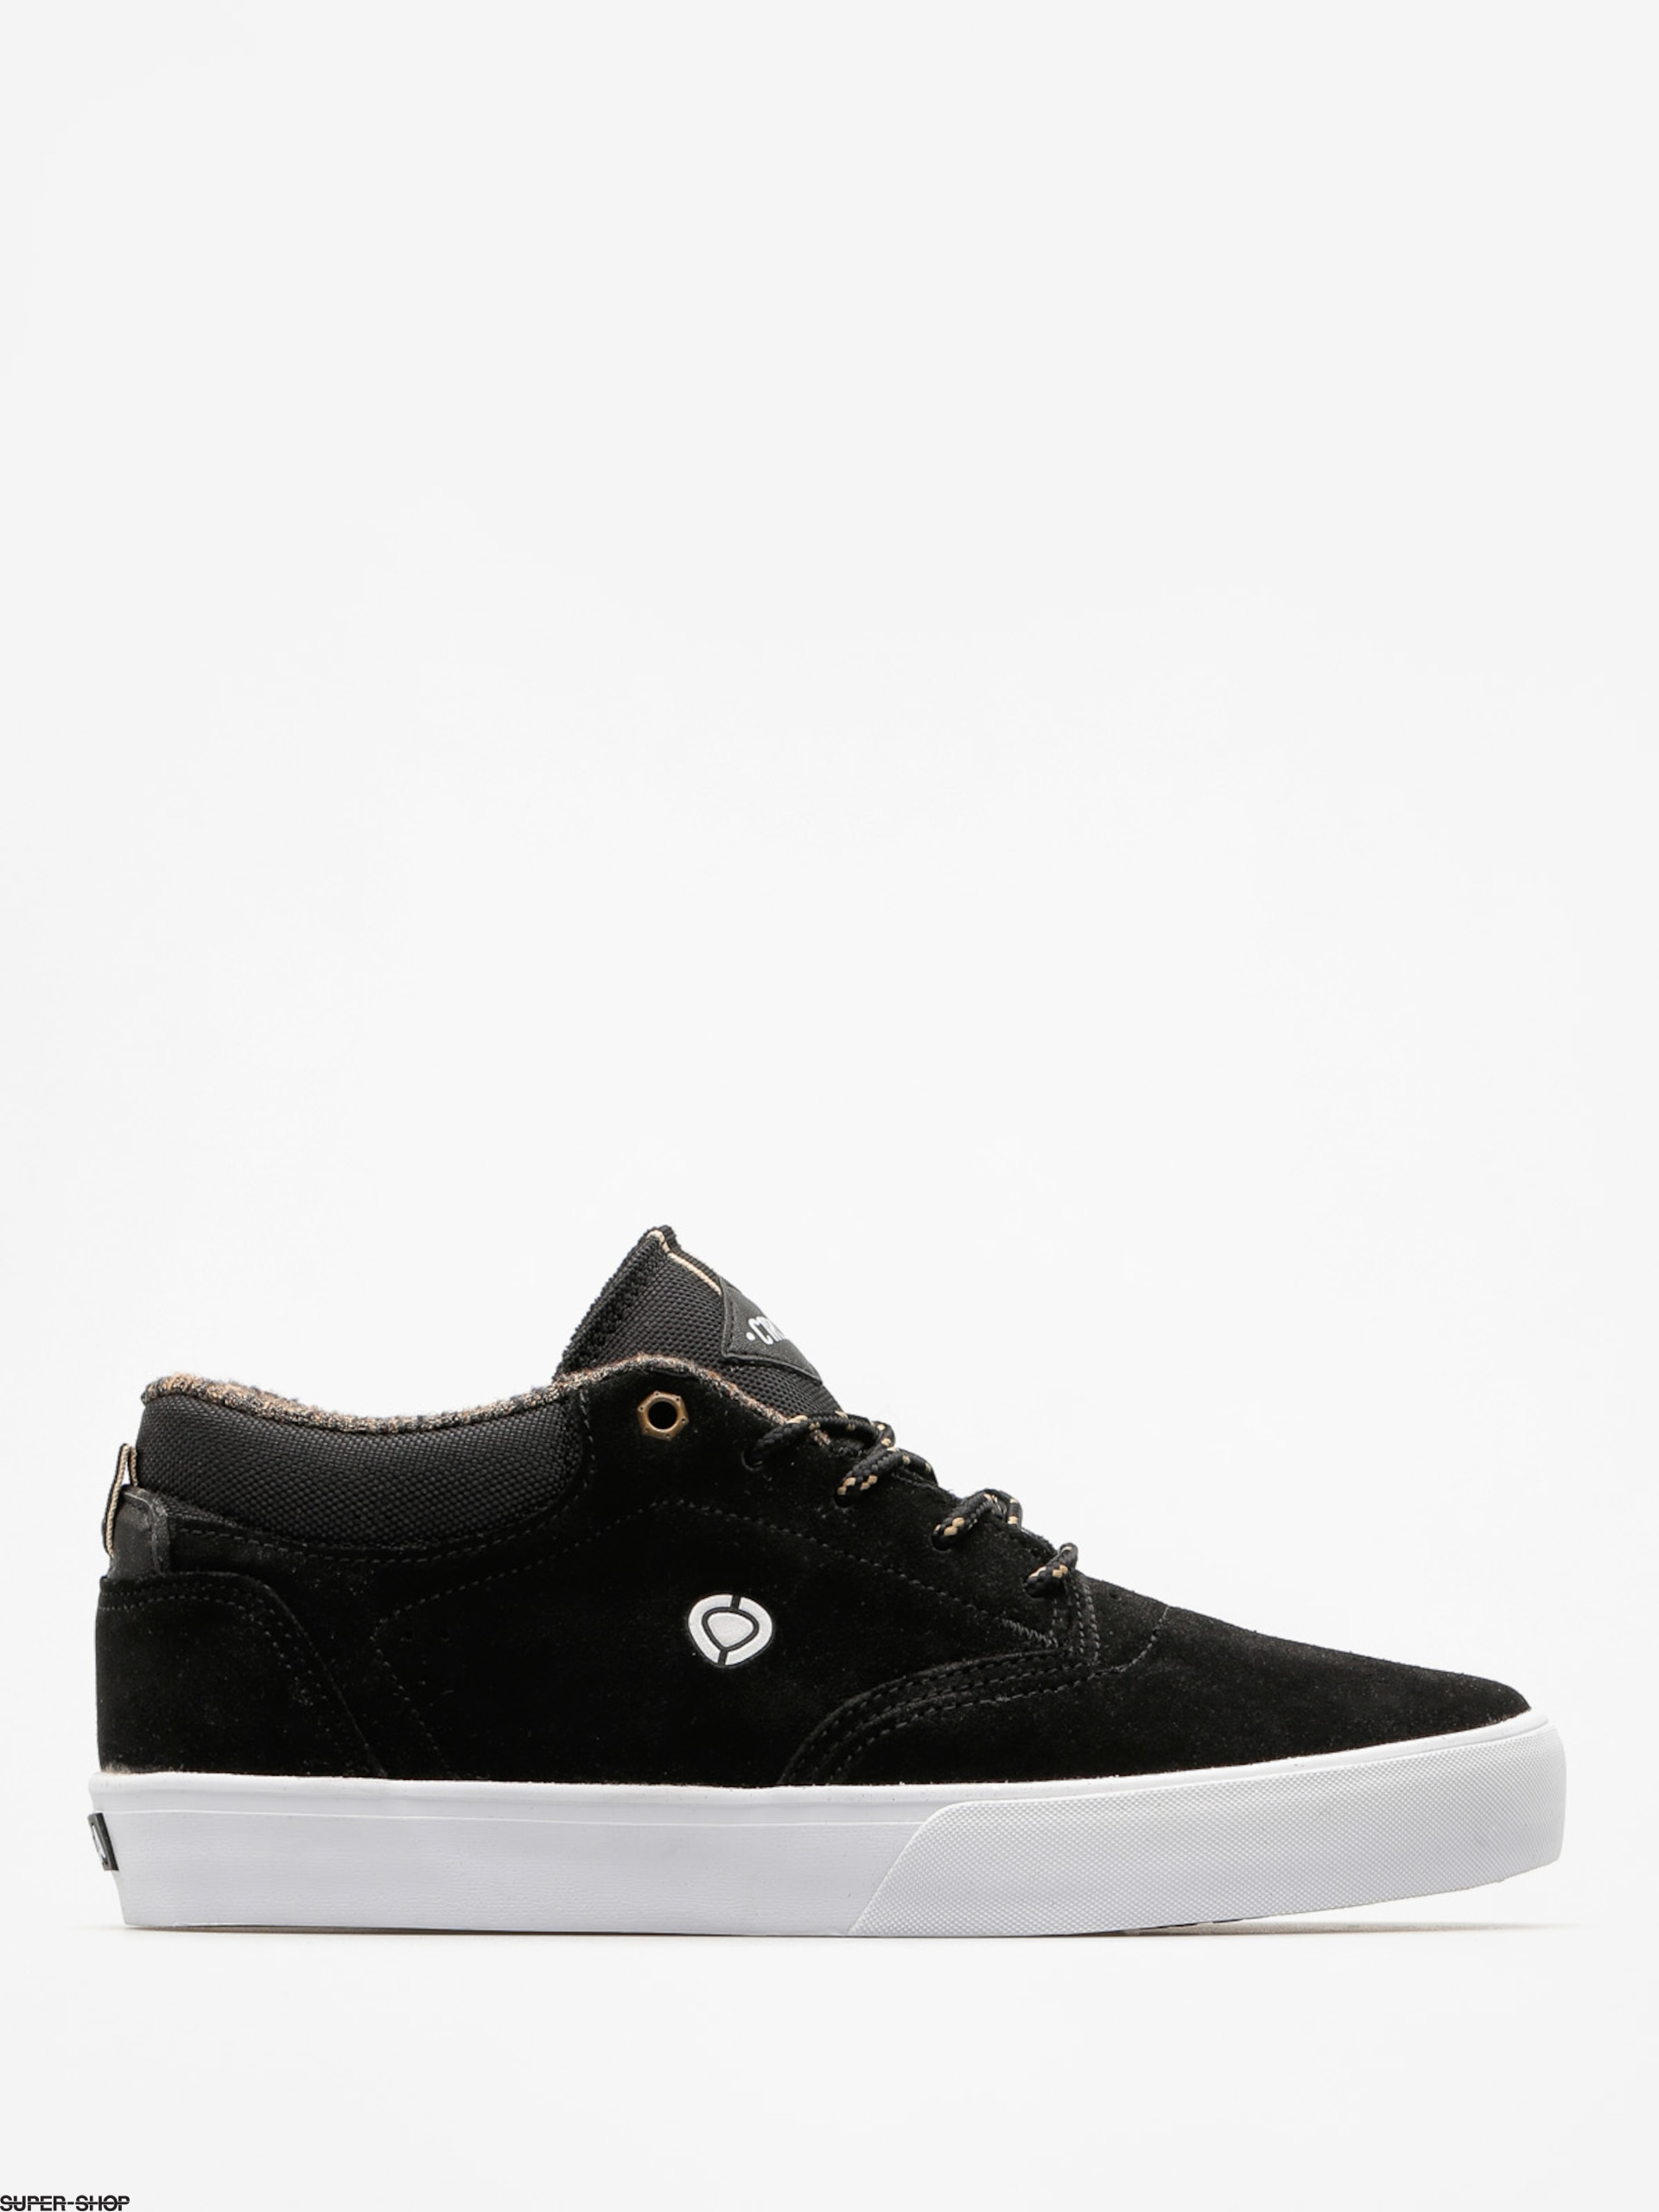 Circa Shoes Lakota Se (black/white)